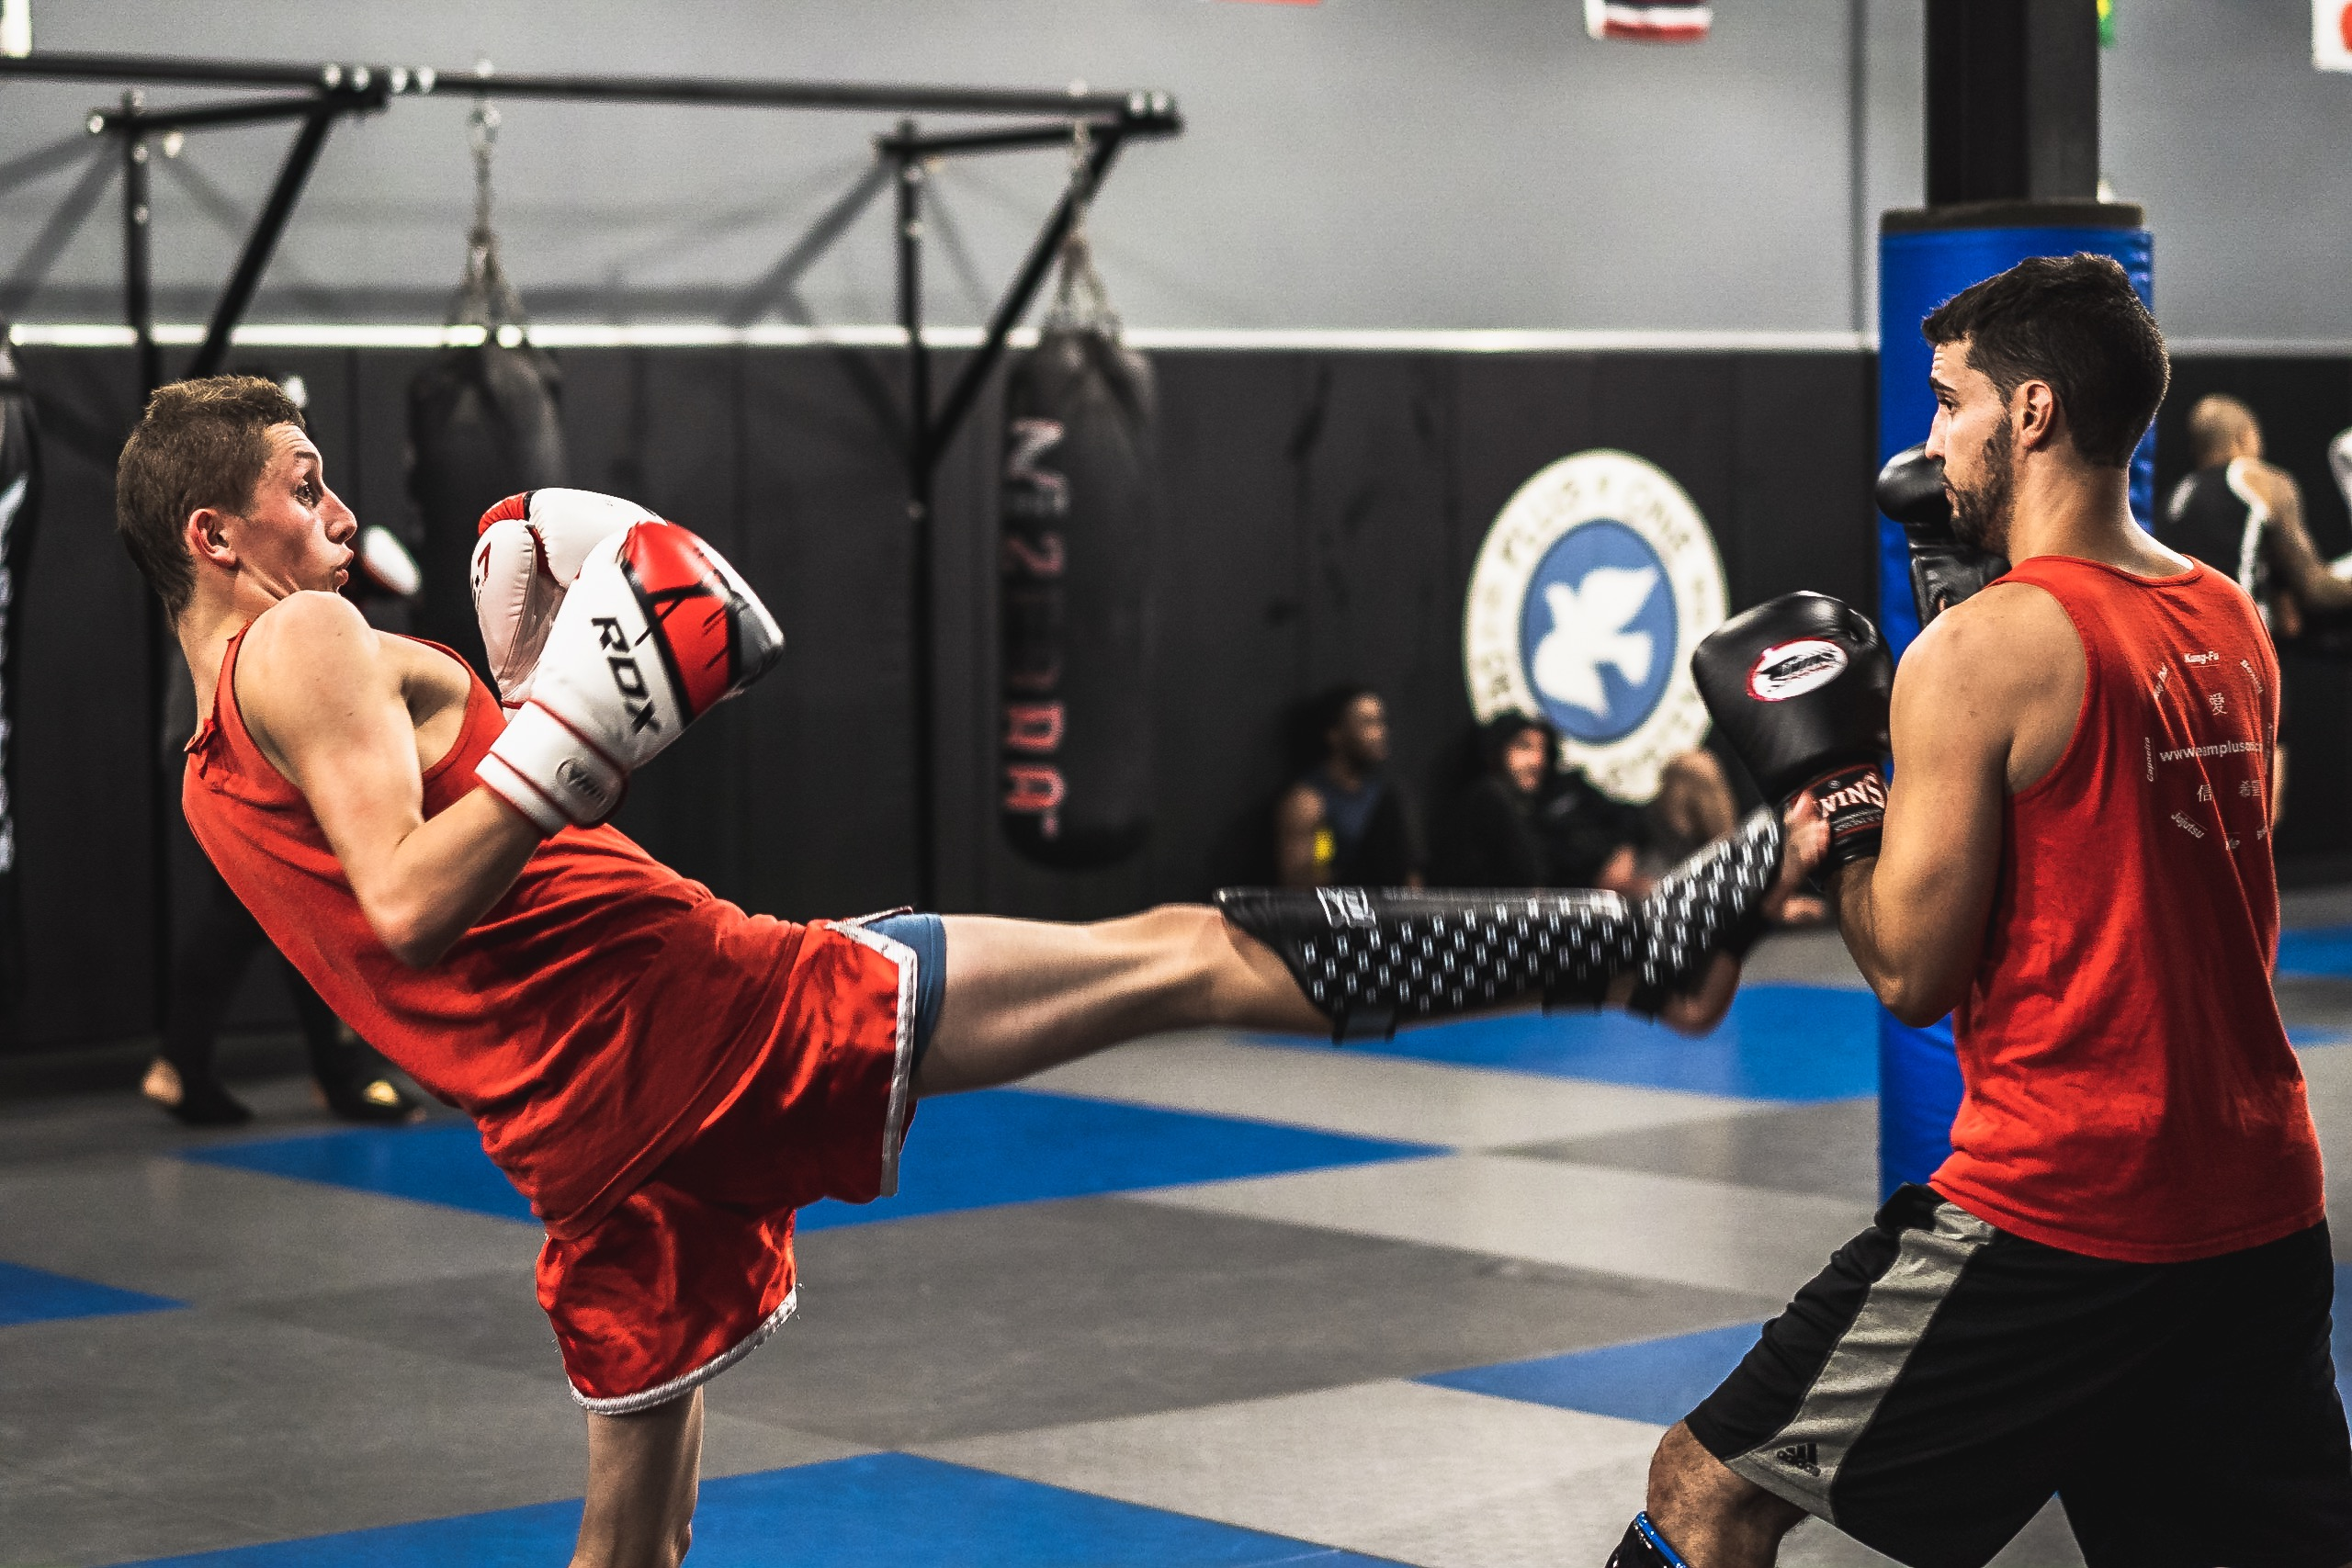 Muay Thai classes are a great cardio workout … but it's NOT Cardio Kickboxing